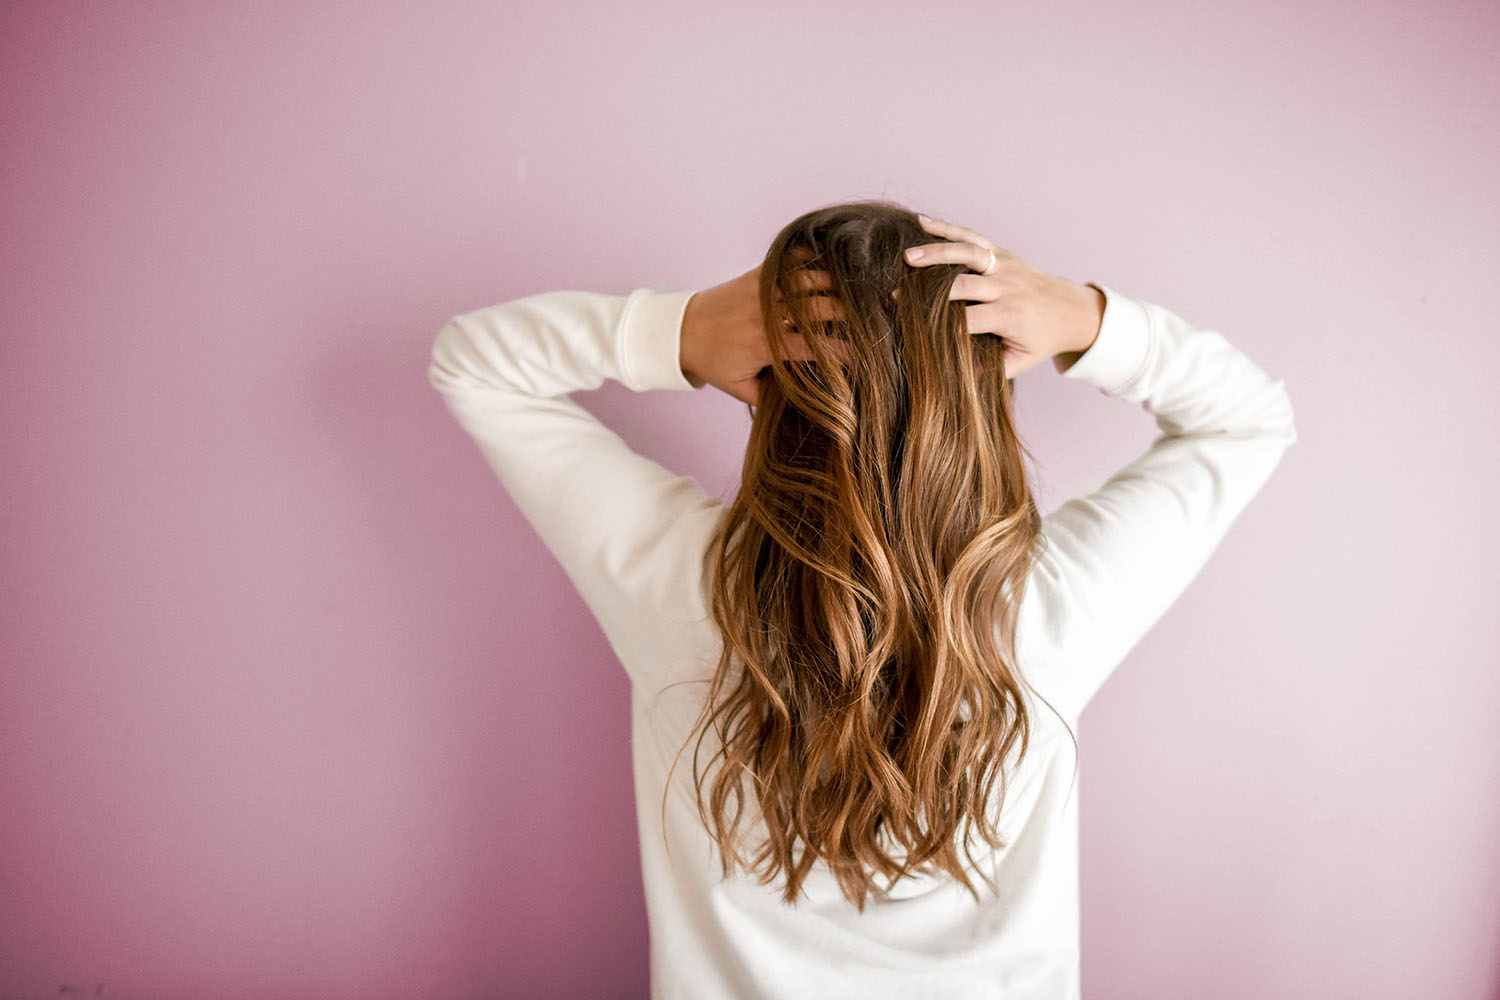 Postpartum Hair Loss: What to Expect